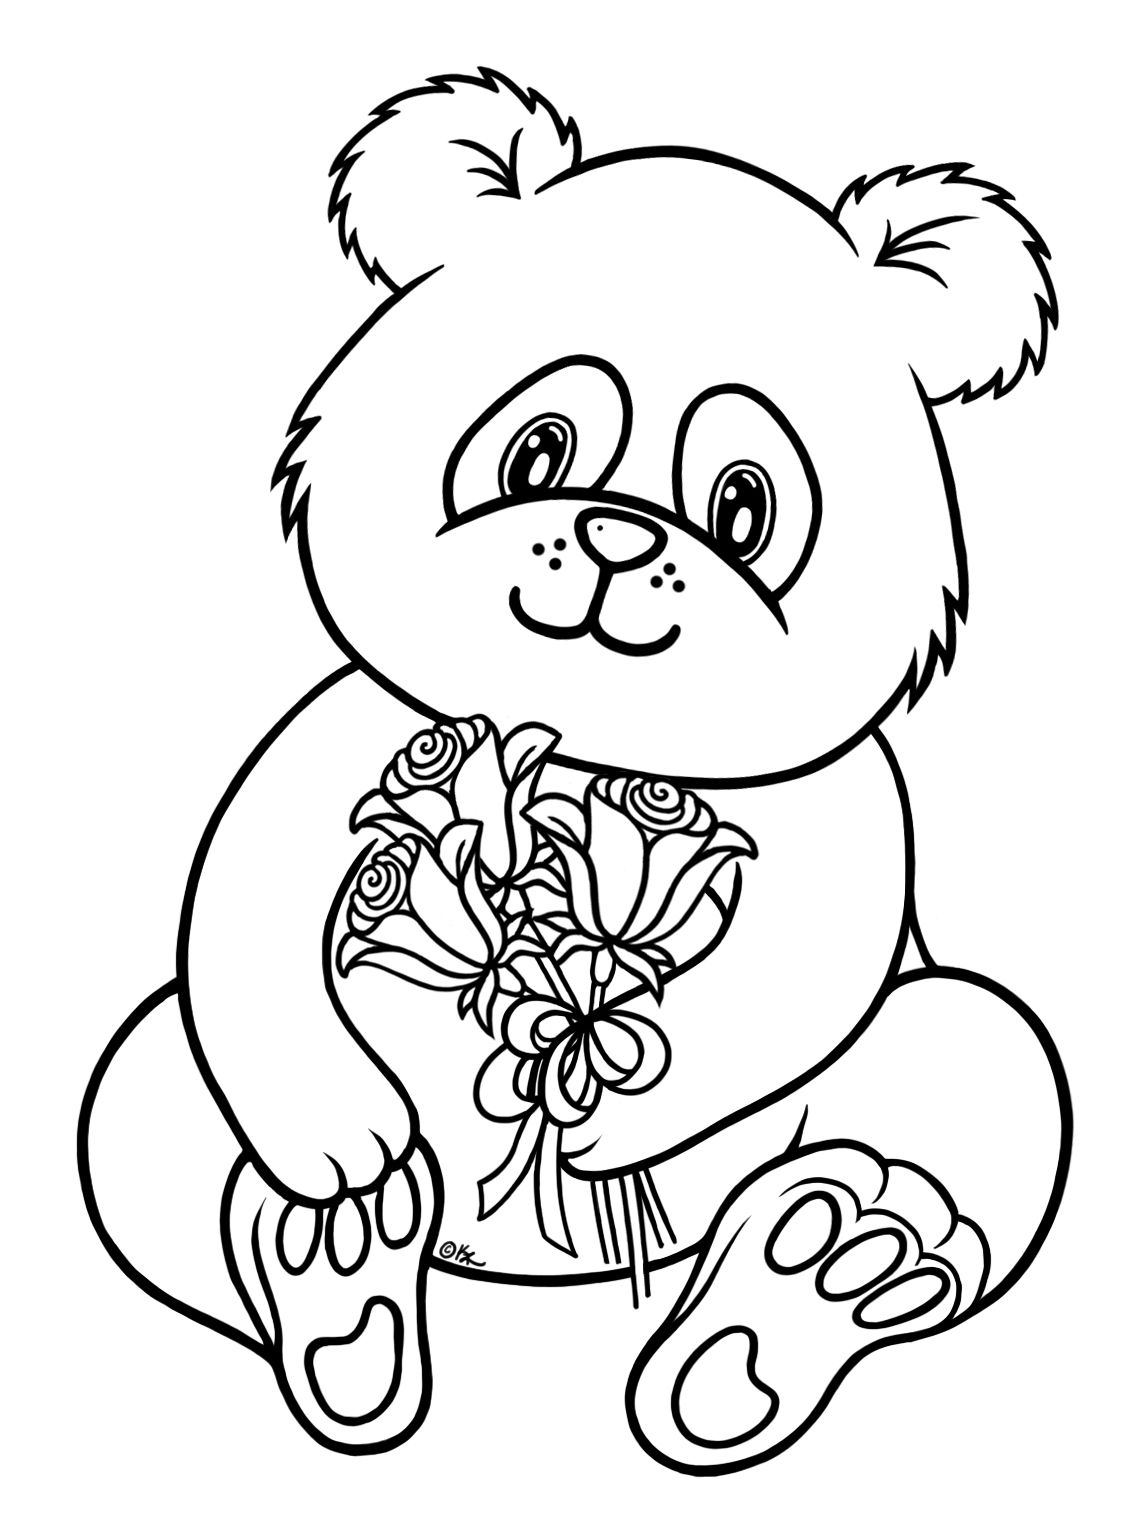 Panda Bear Bear Coloring Pages Unicorn Coloring Pages Panda Coloring Pages